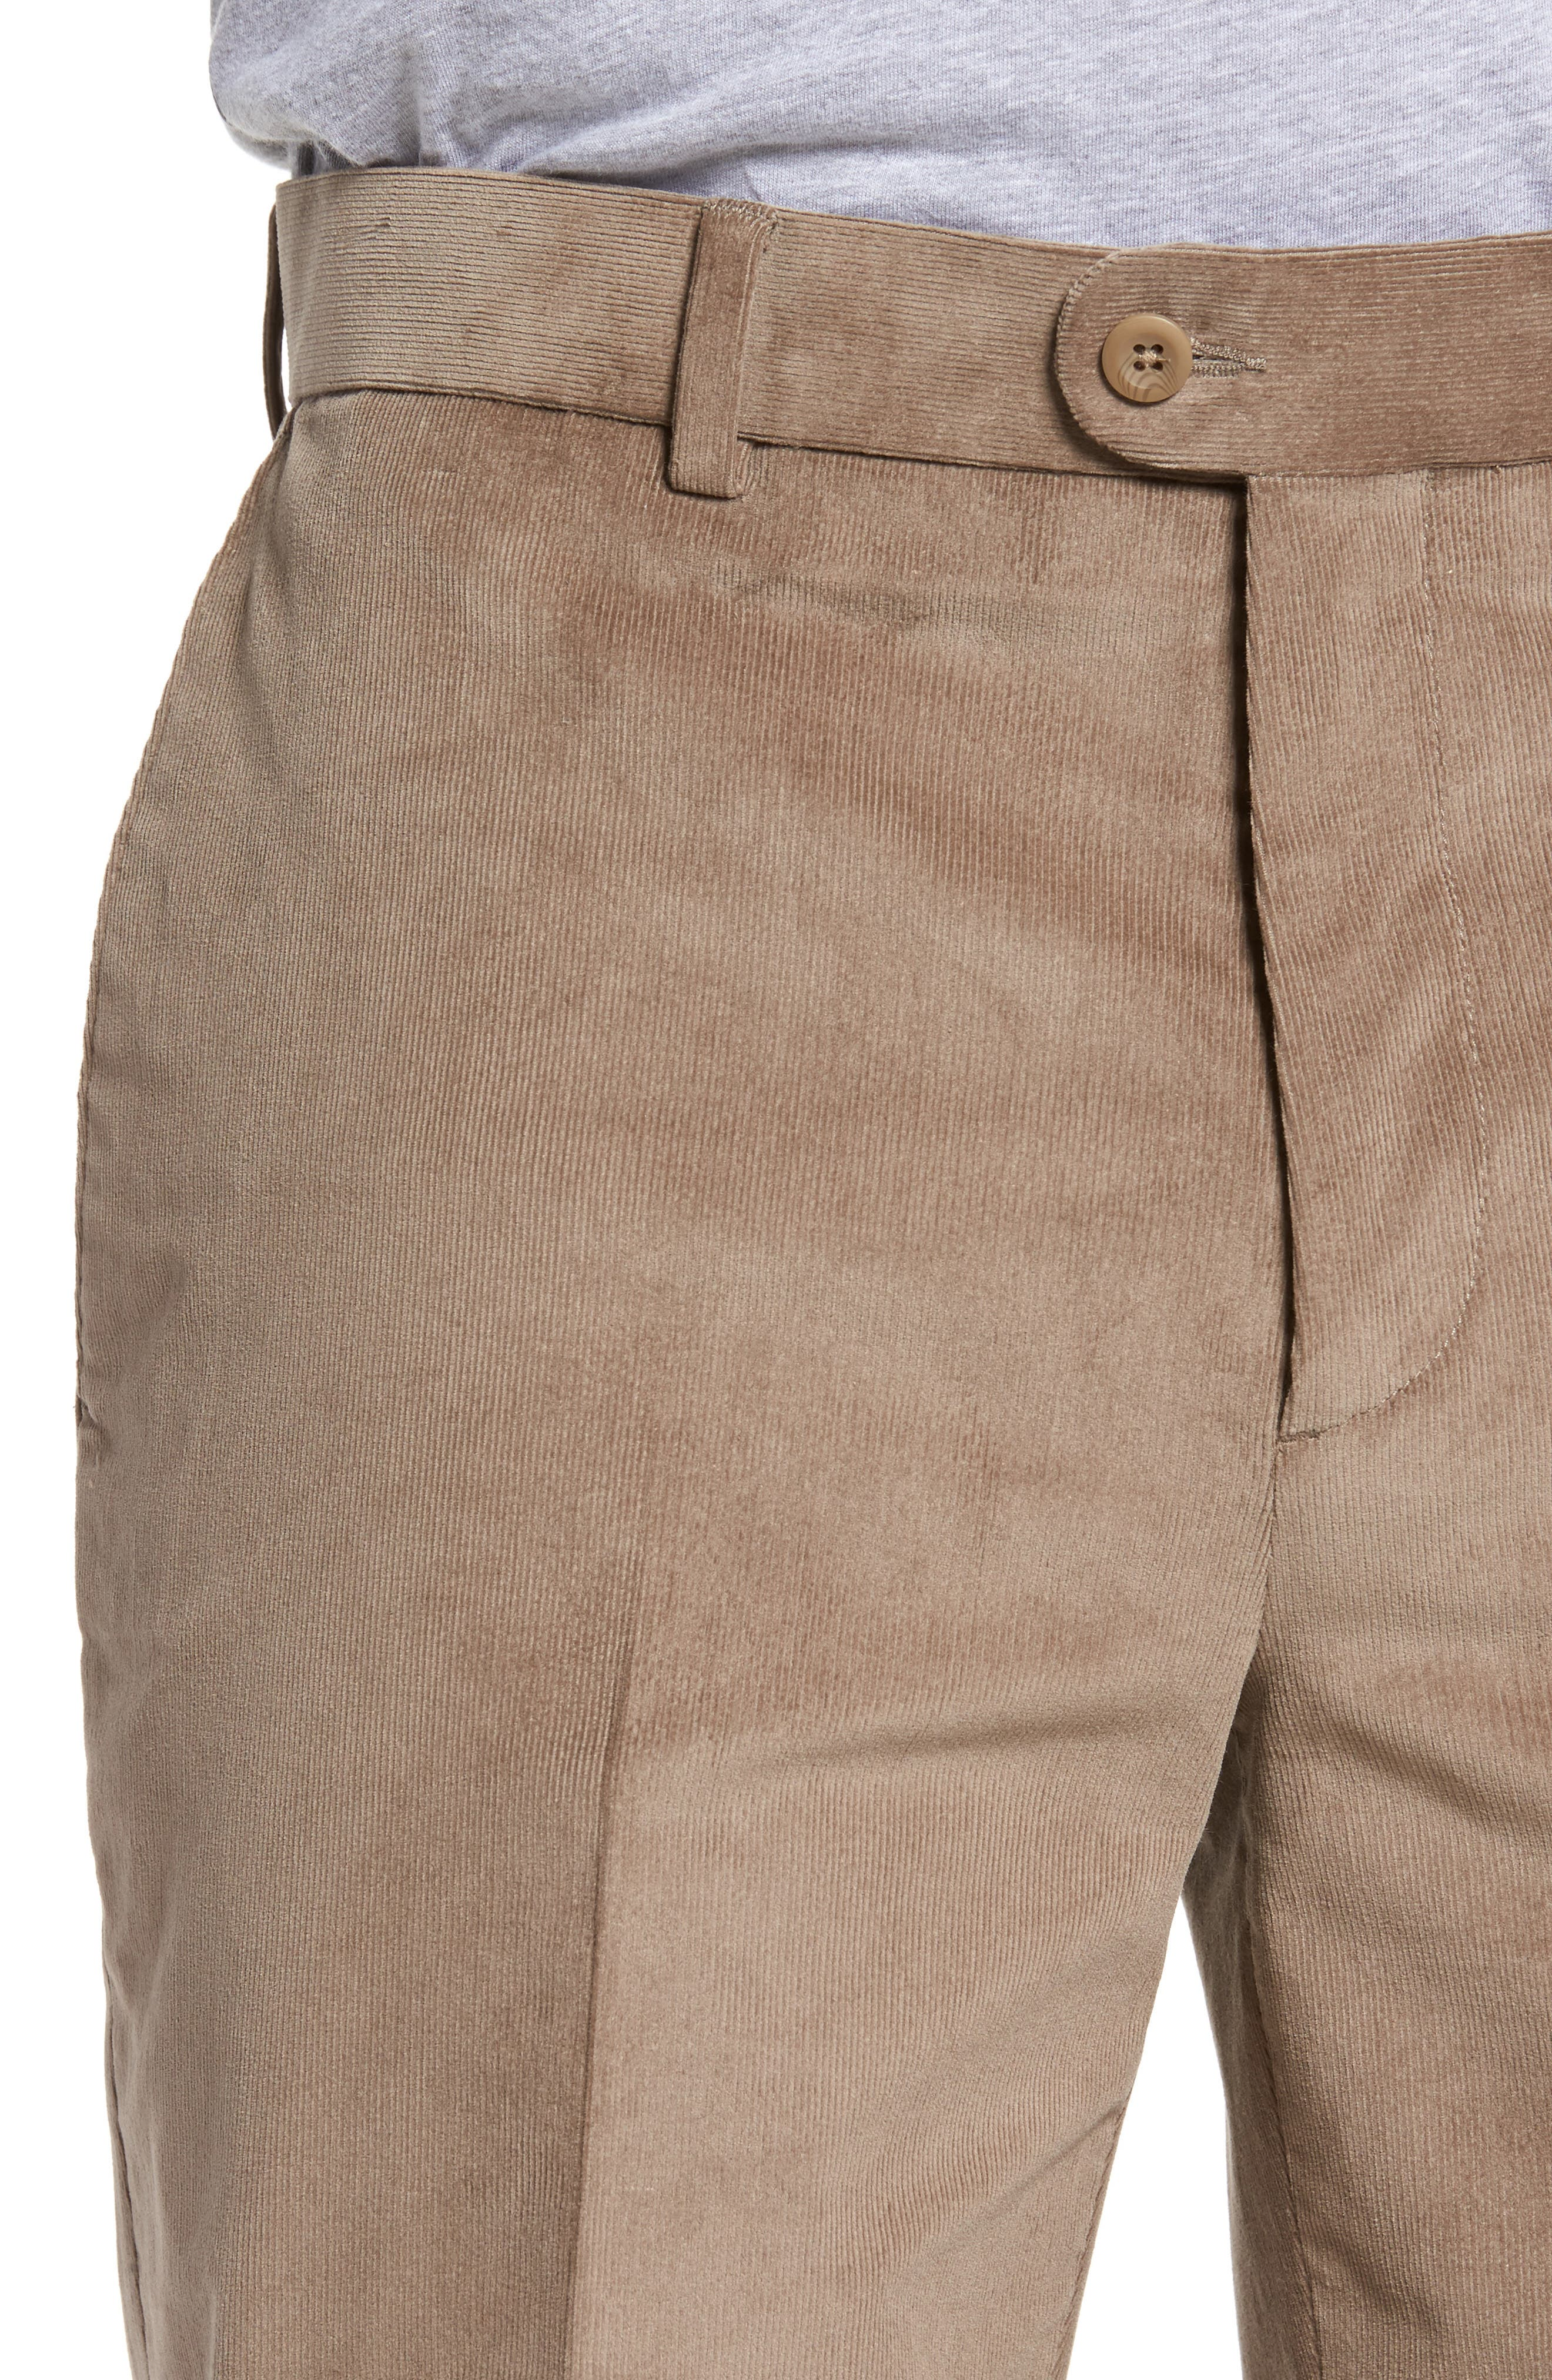 Corduroy Pants,                             Alternate thumbnail 4, color,                             Tan